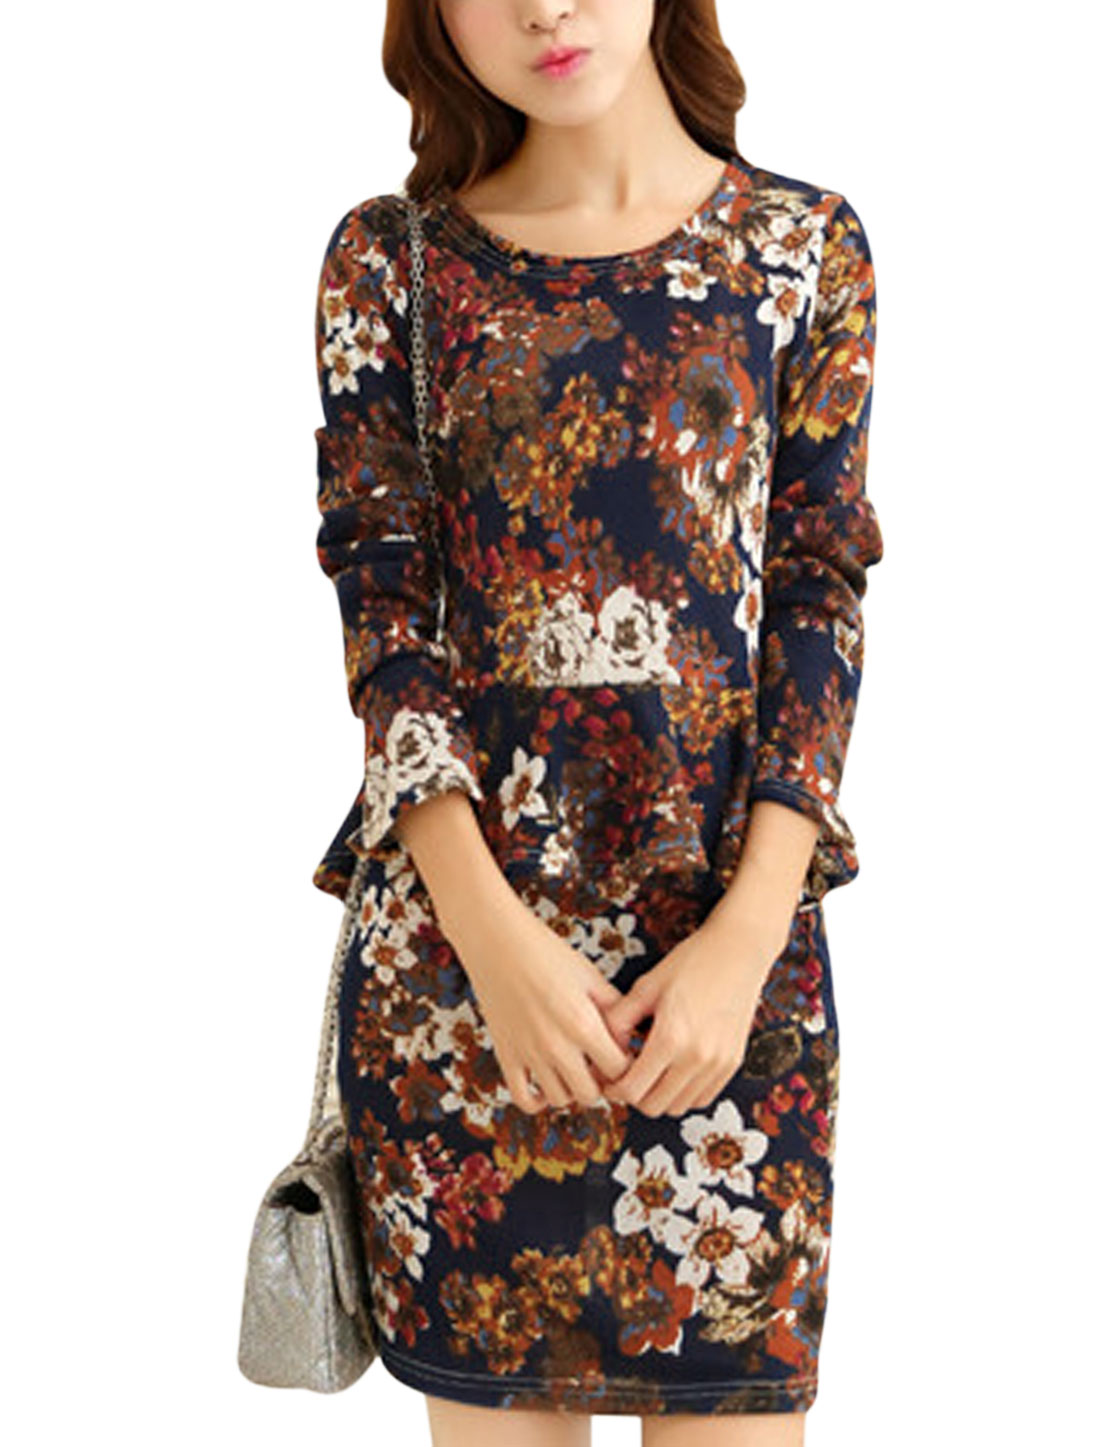 Women Floral Prints Round Neck Long Sleeve Knitted Peplum Top Navy Blue XS